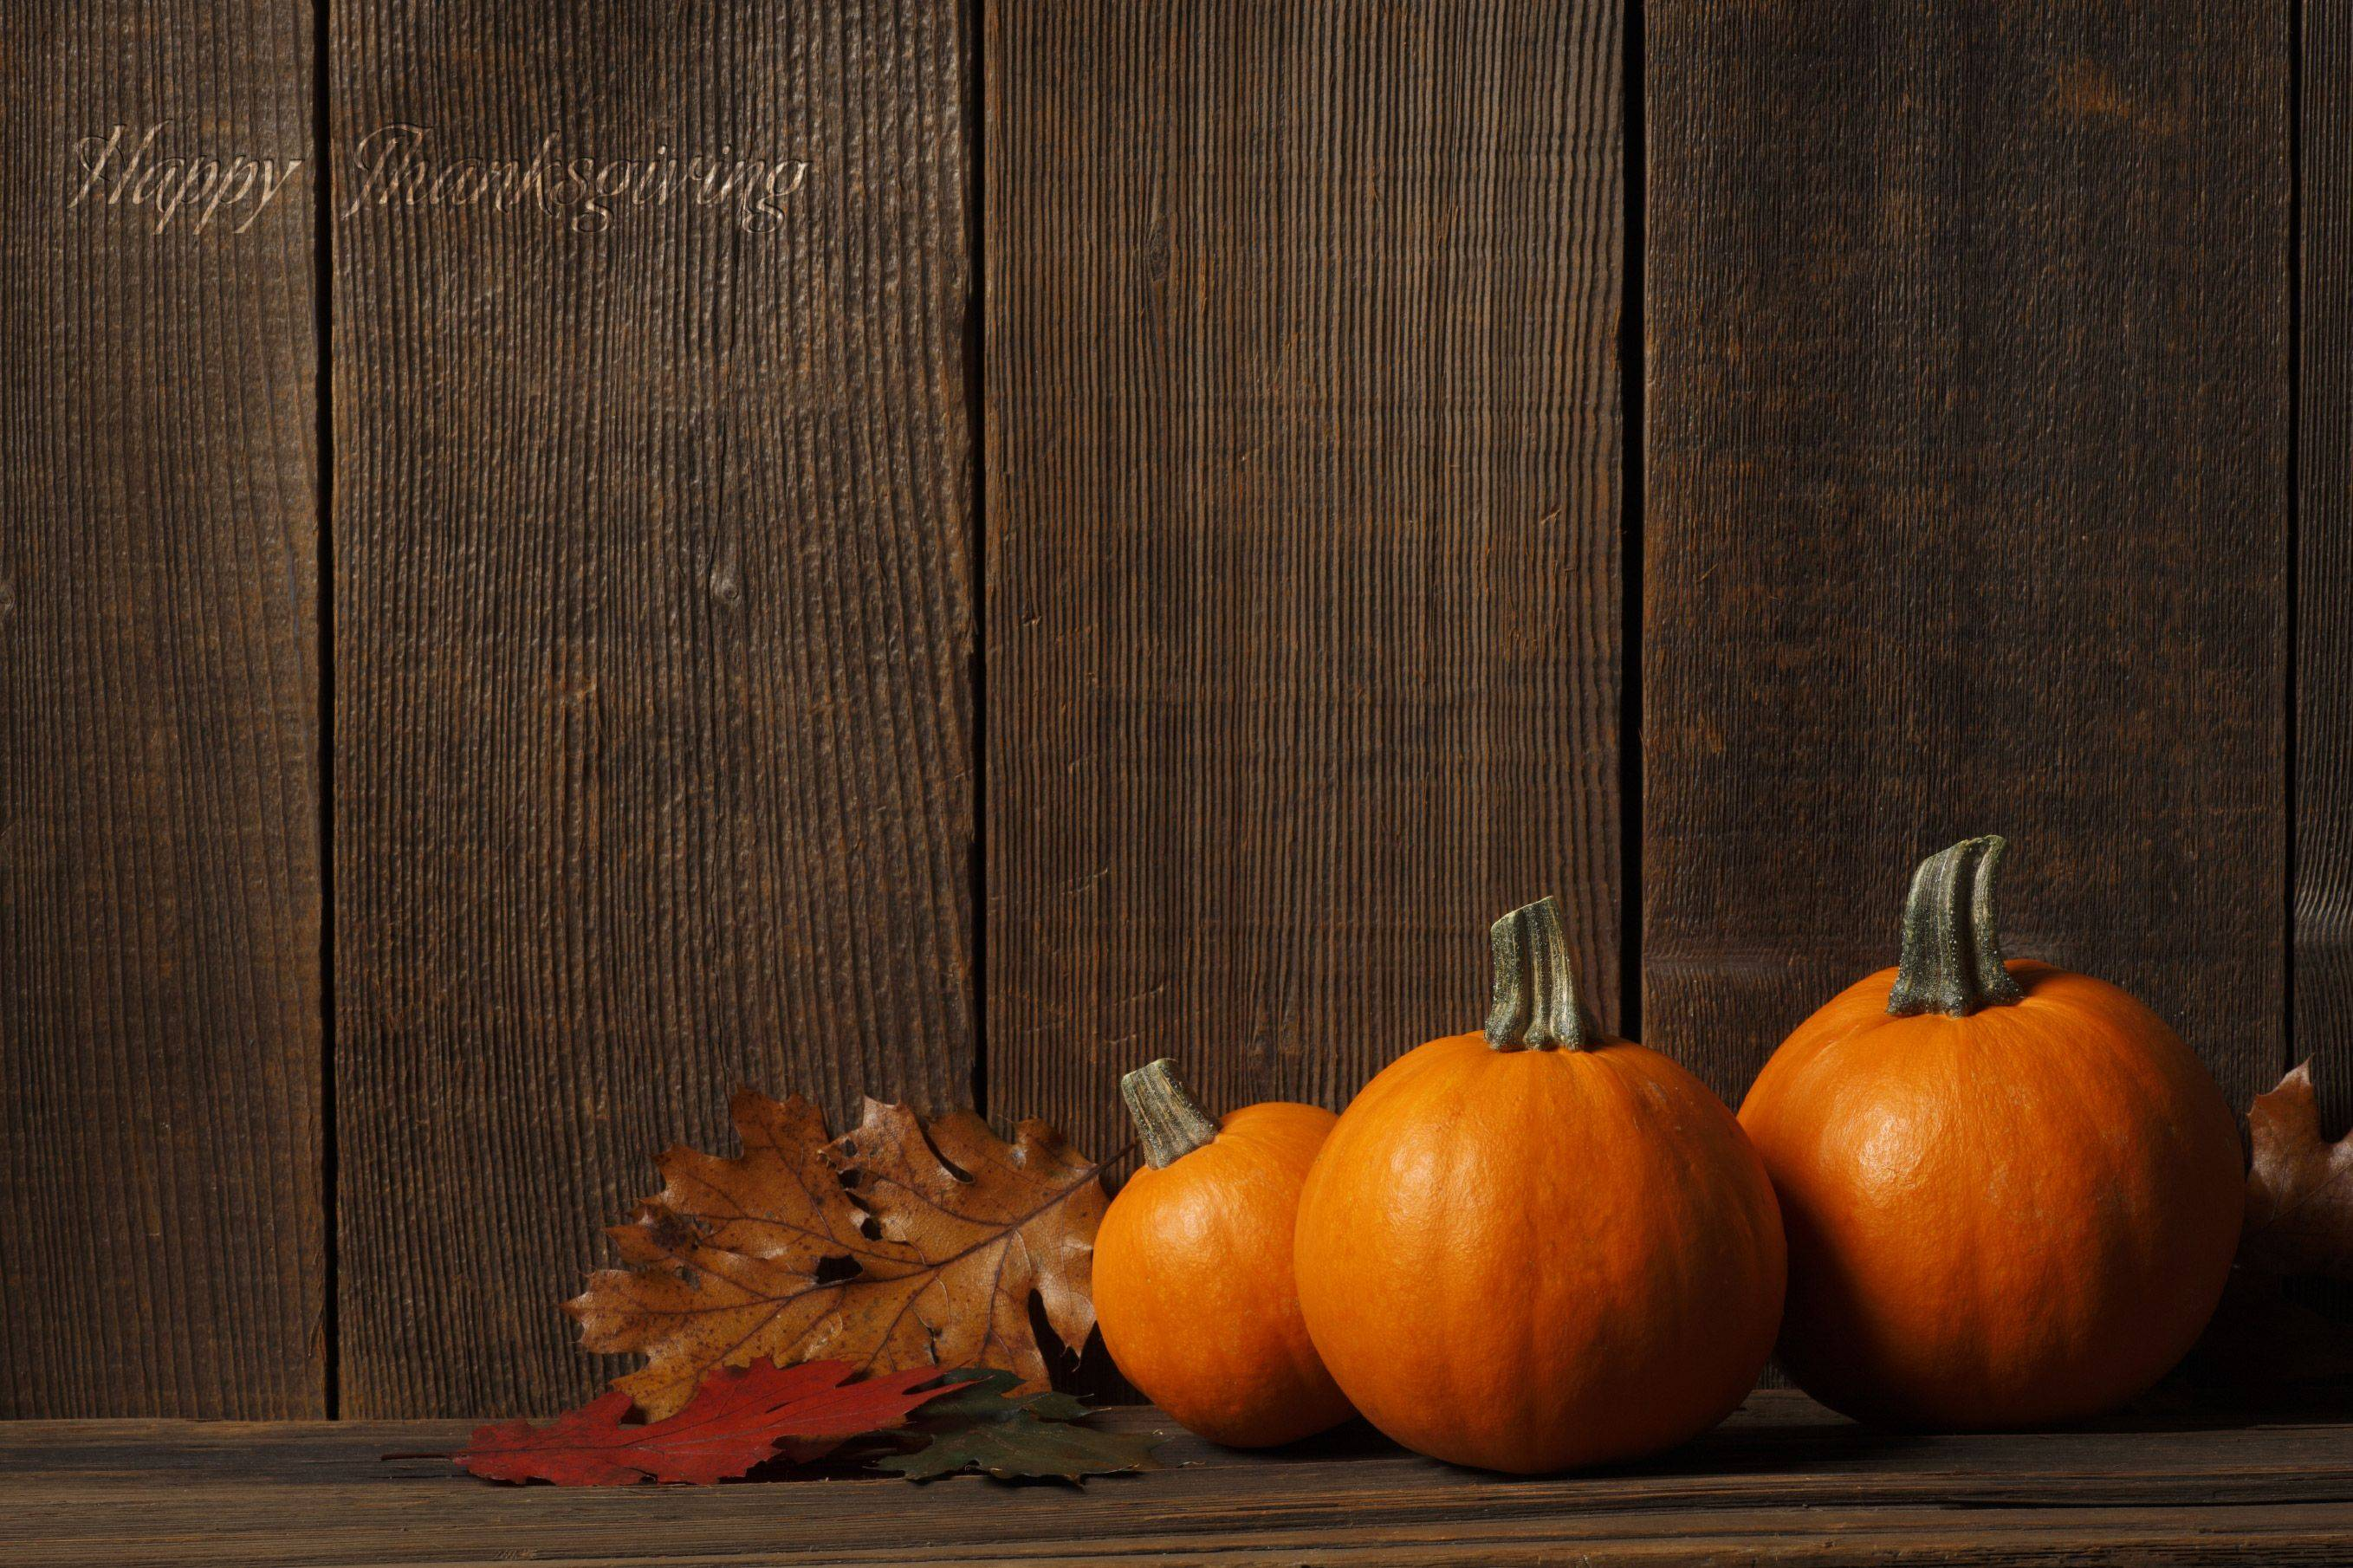 Thanksgiving Pumpkin Wallpapers Top Free Thanksgiving Pumpkin Backgrounds Wallpaperaccess